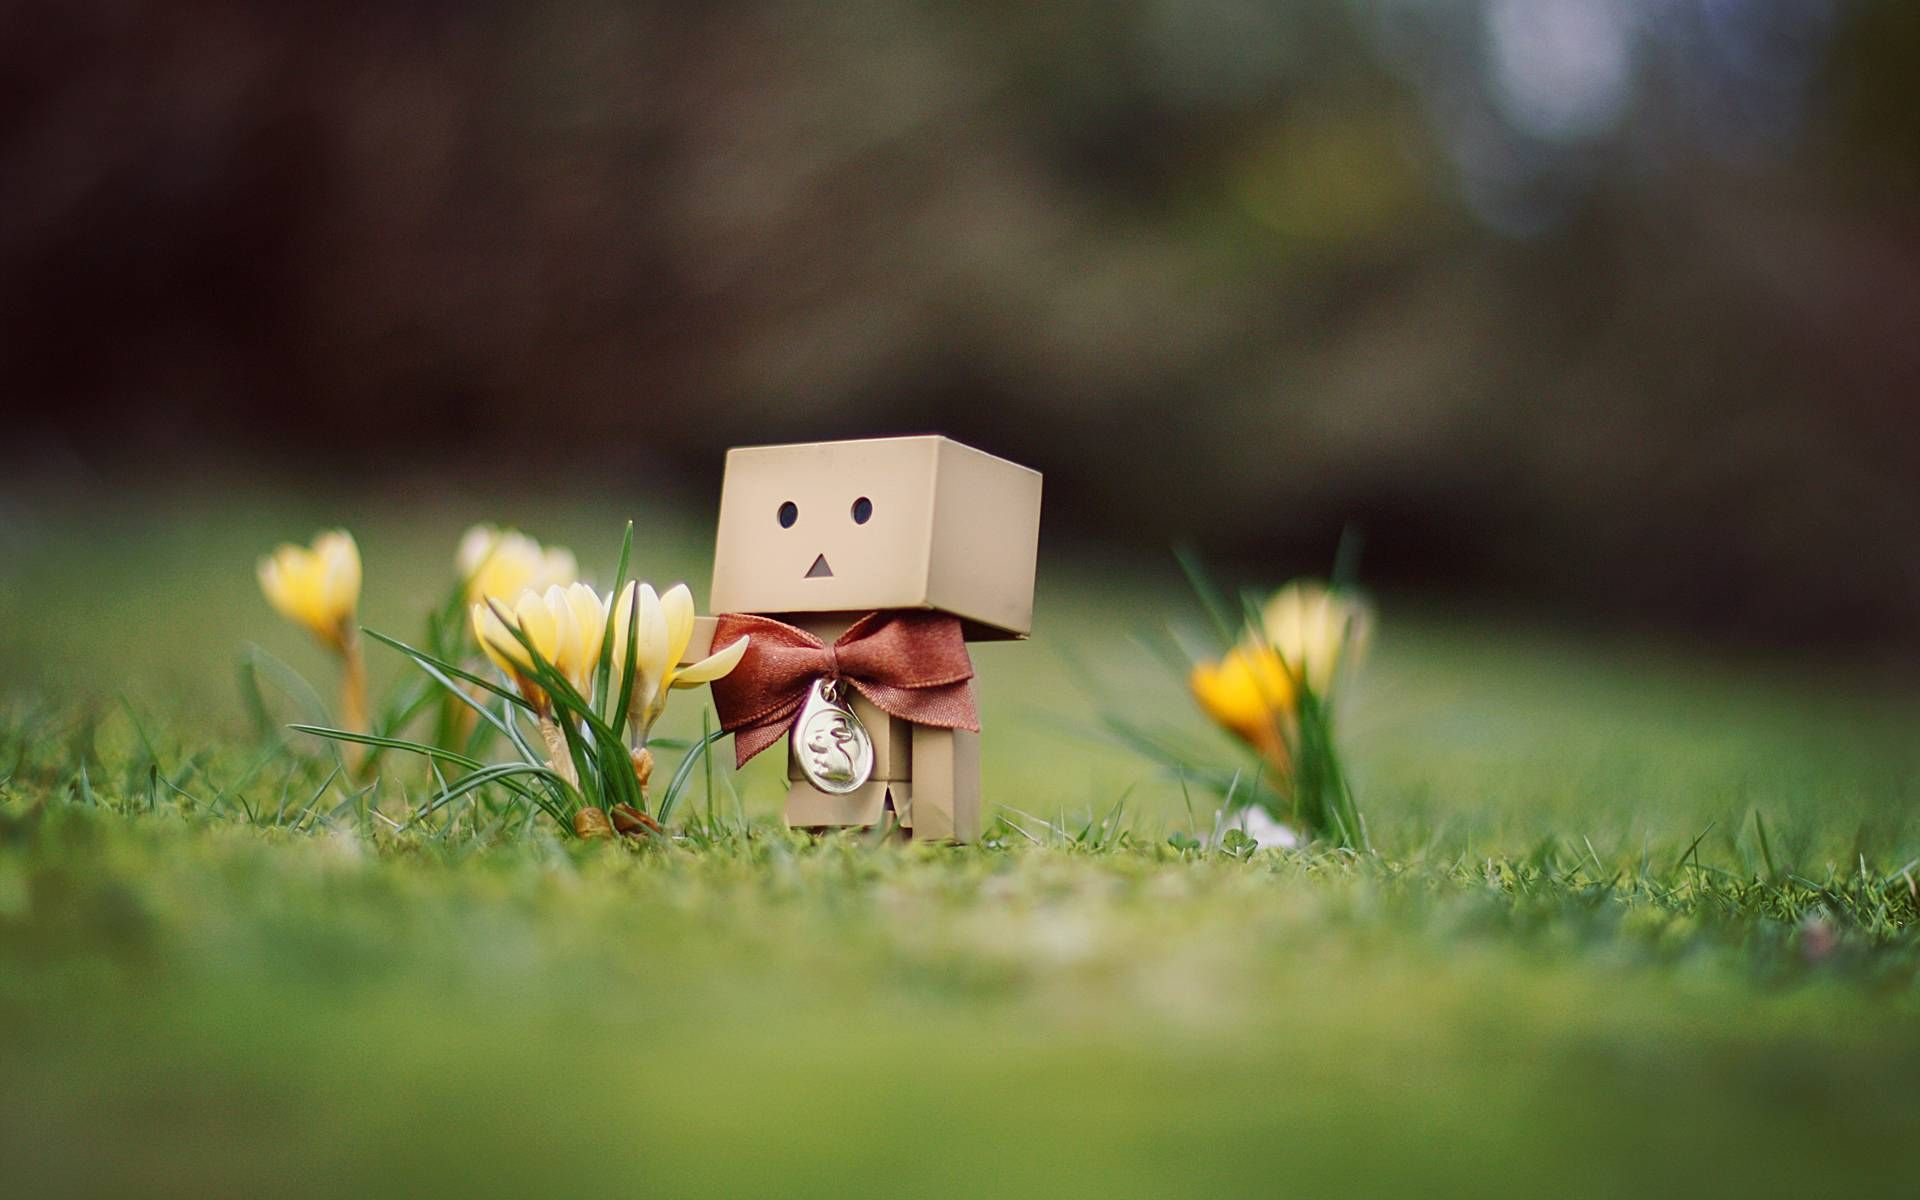 danbo wallpapers - full hd wallpaper search - page 3 | danbo